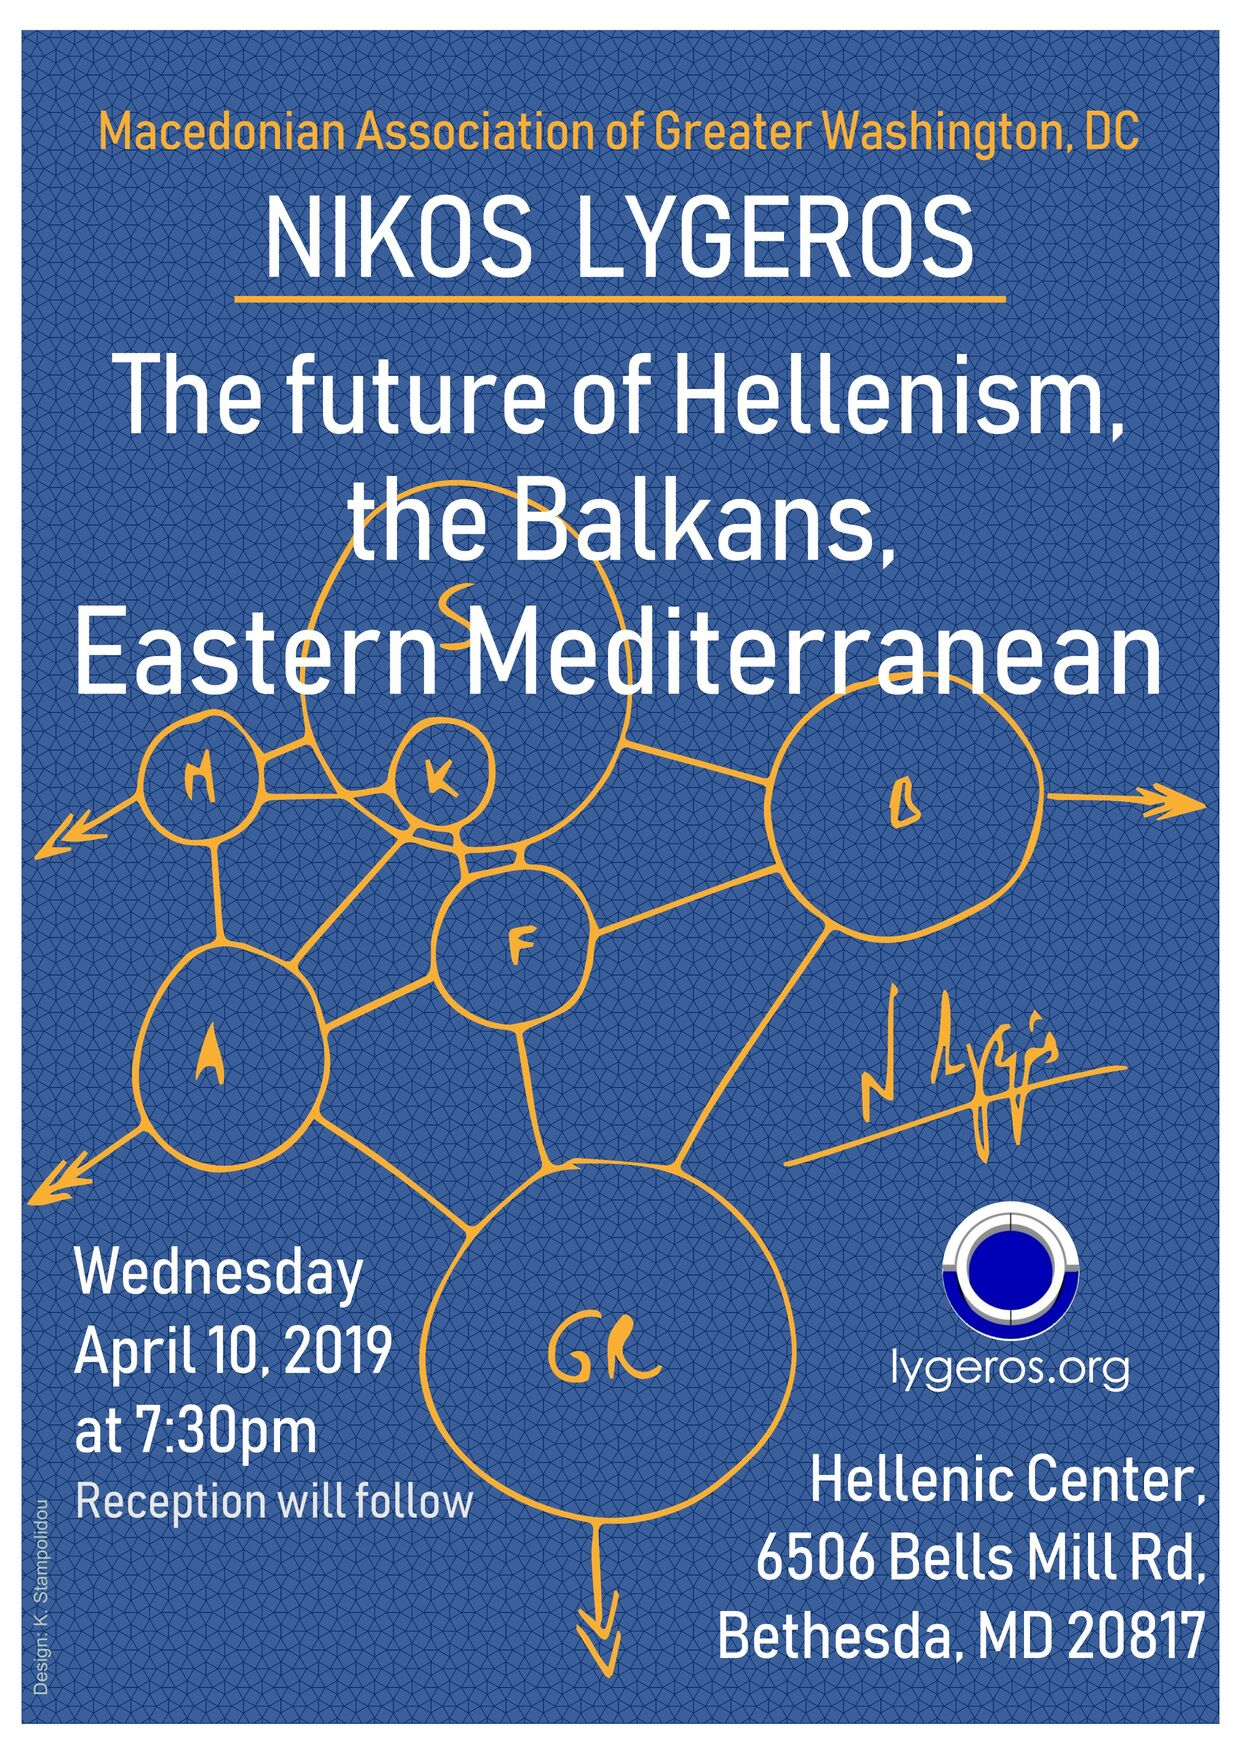 The future of Hellenism, the Balkans, Eastern Mediterranean